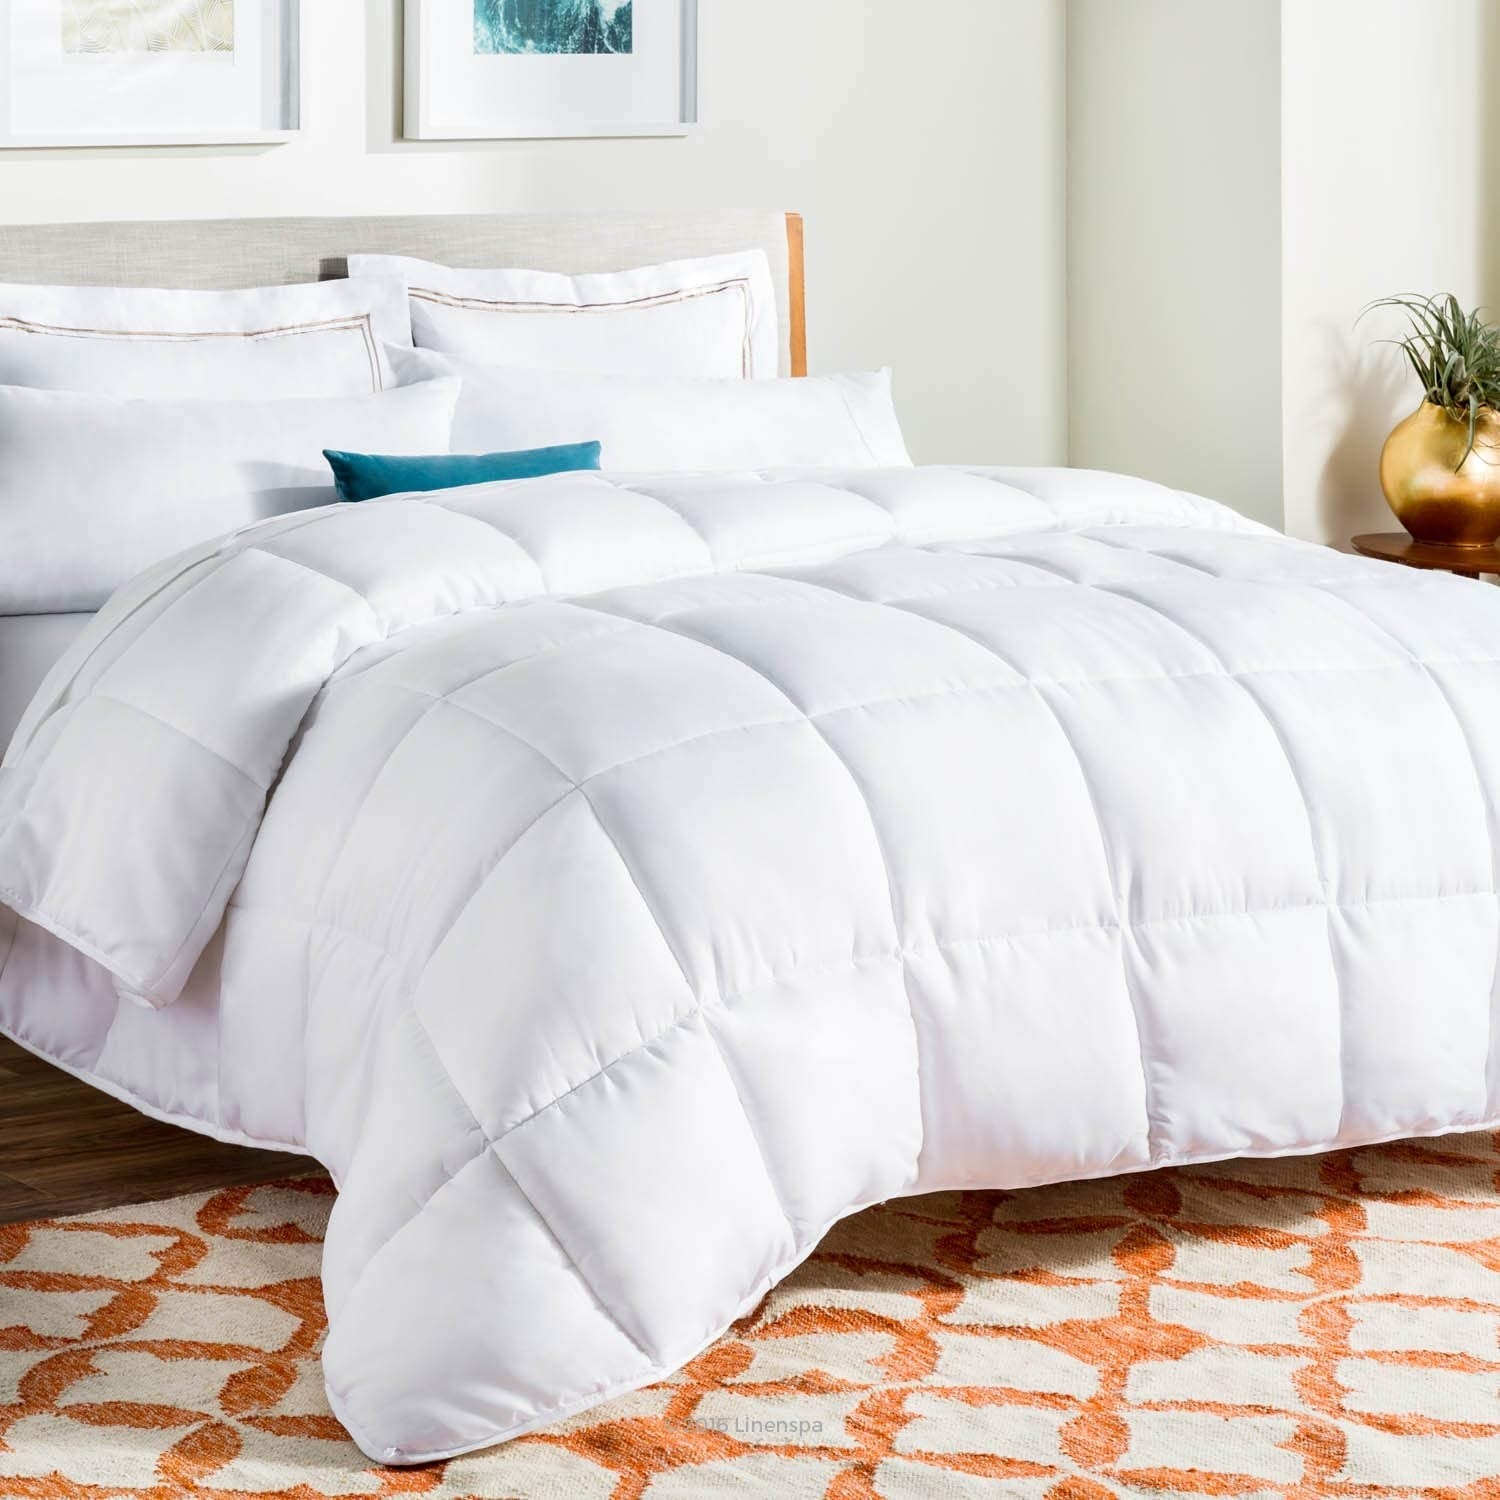 A comforter on a large bed